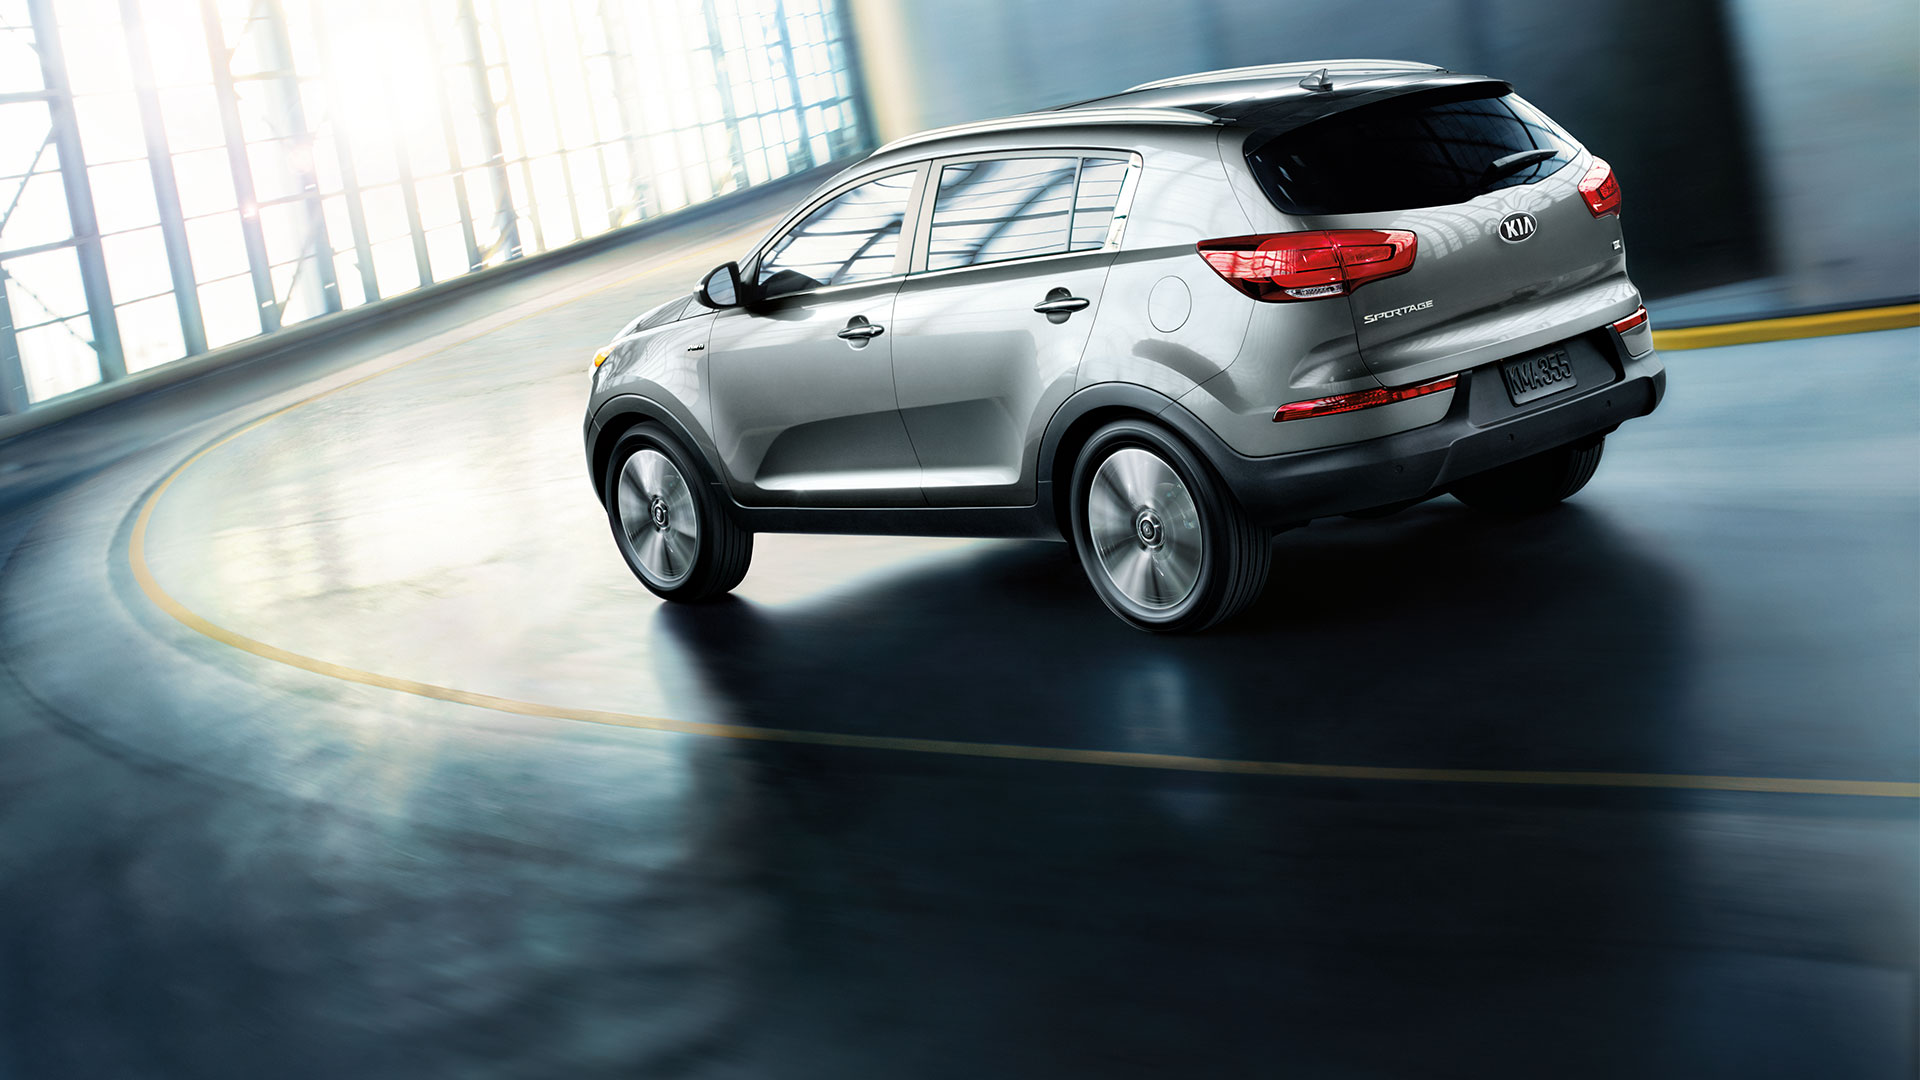 New Kia Sportage Best Lease fers & Prices near Manchester NH